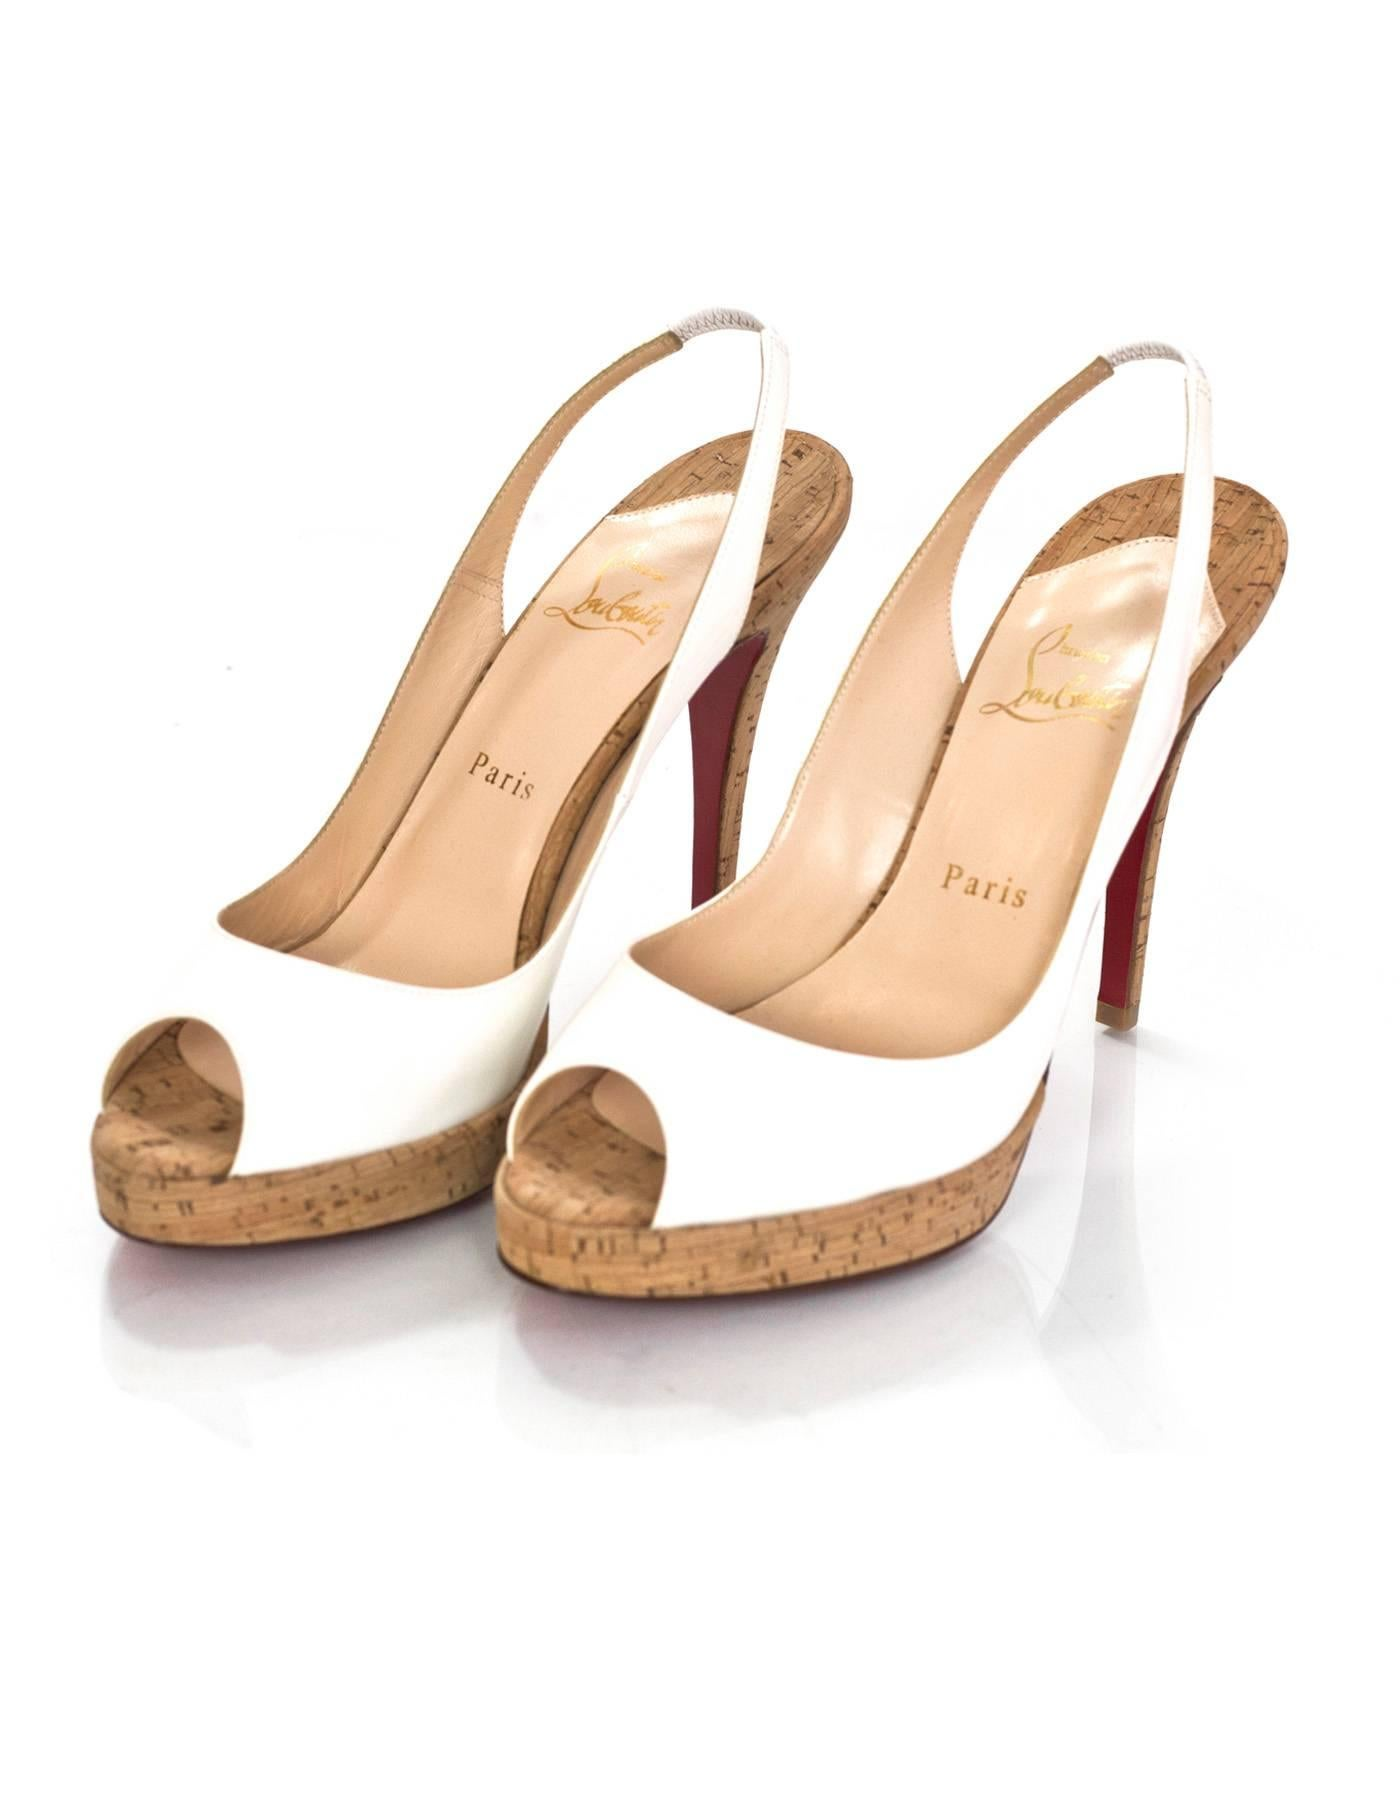 ee0715ef043 ... cheap christian louboutin white patent cork peep toe pumps sz 38.5 made  in 58a68 3f605